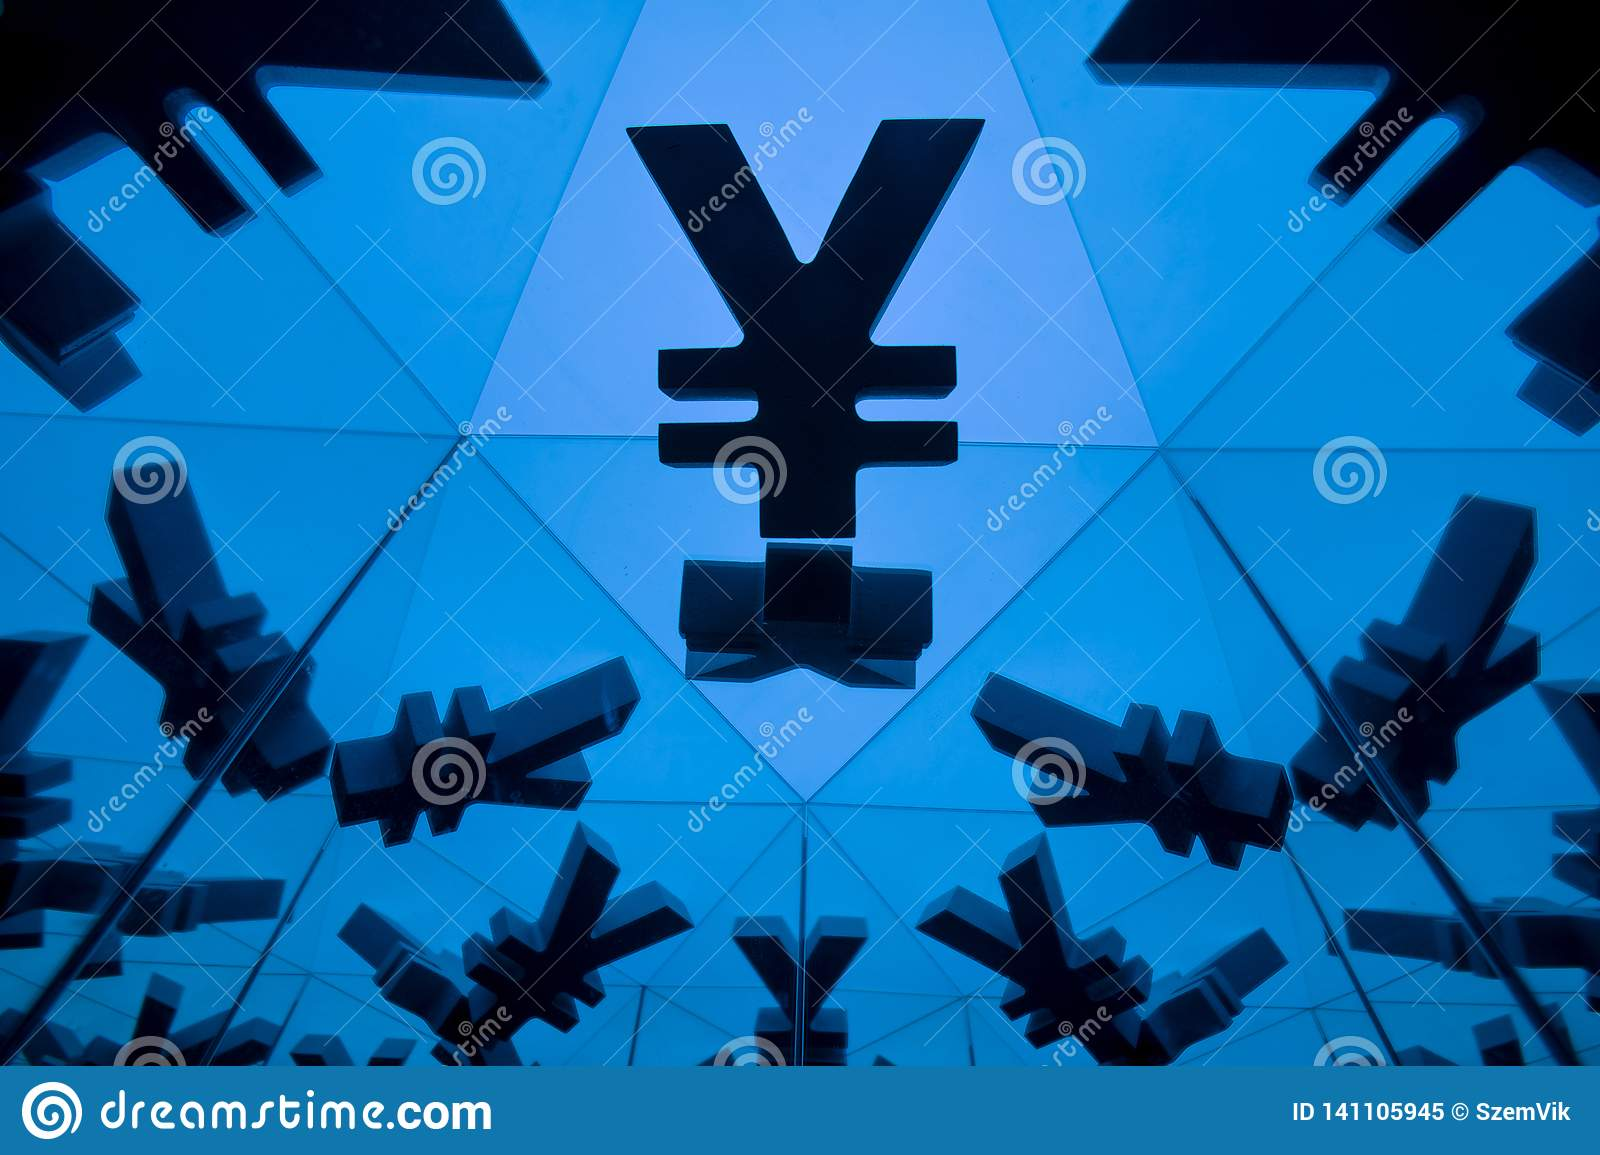 Yen or Yuan Currency Symbol With Many Mirroring Images